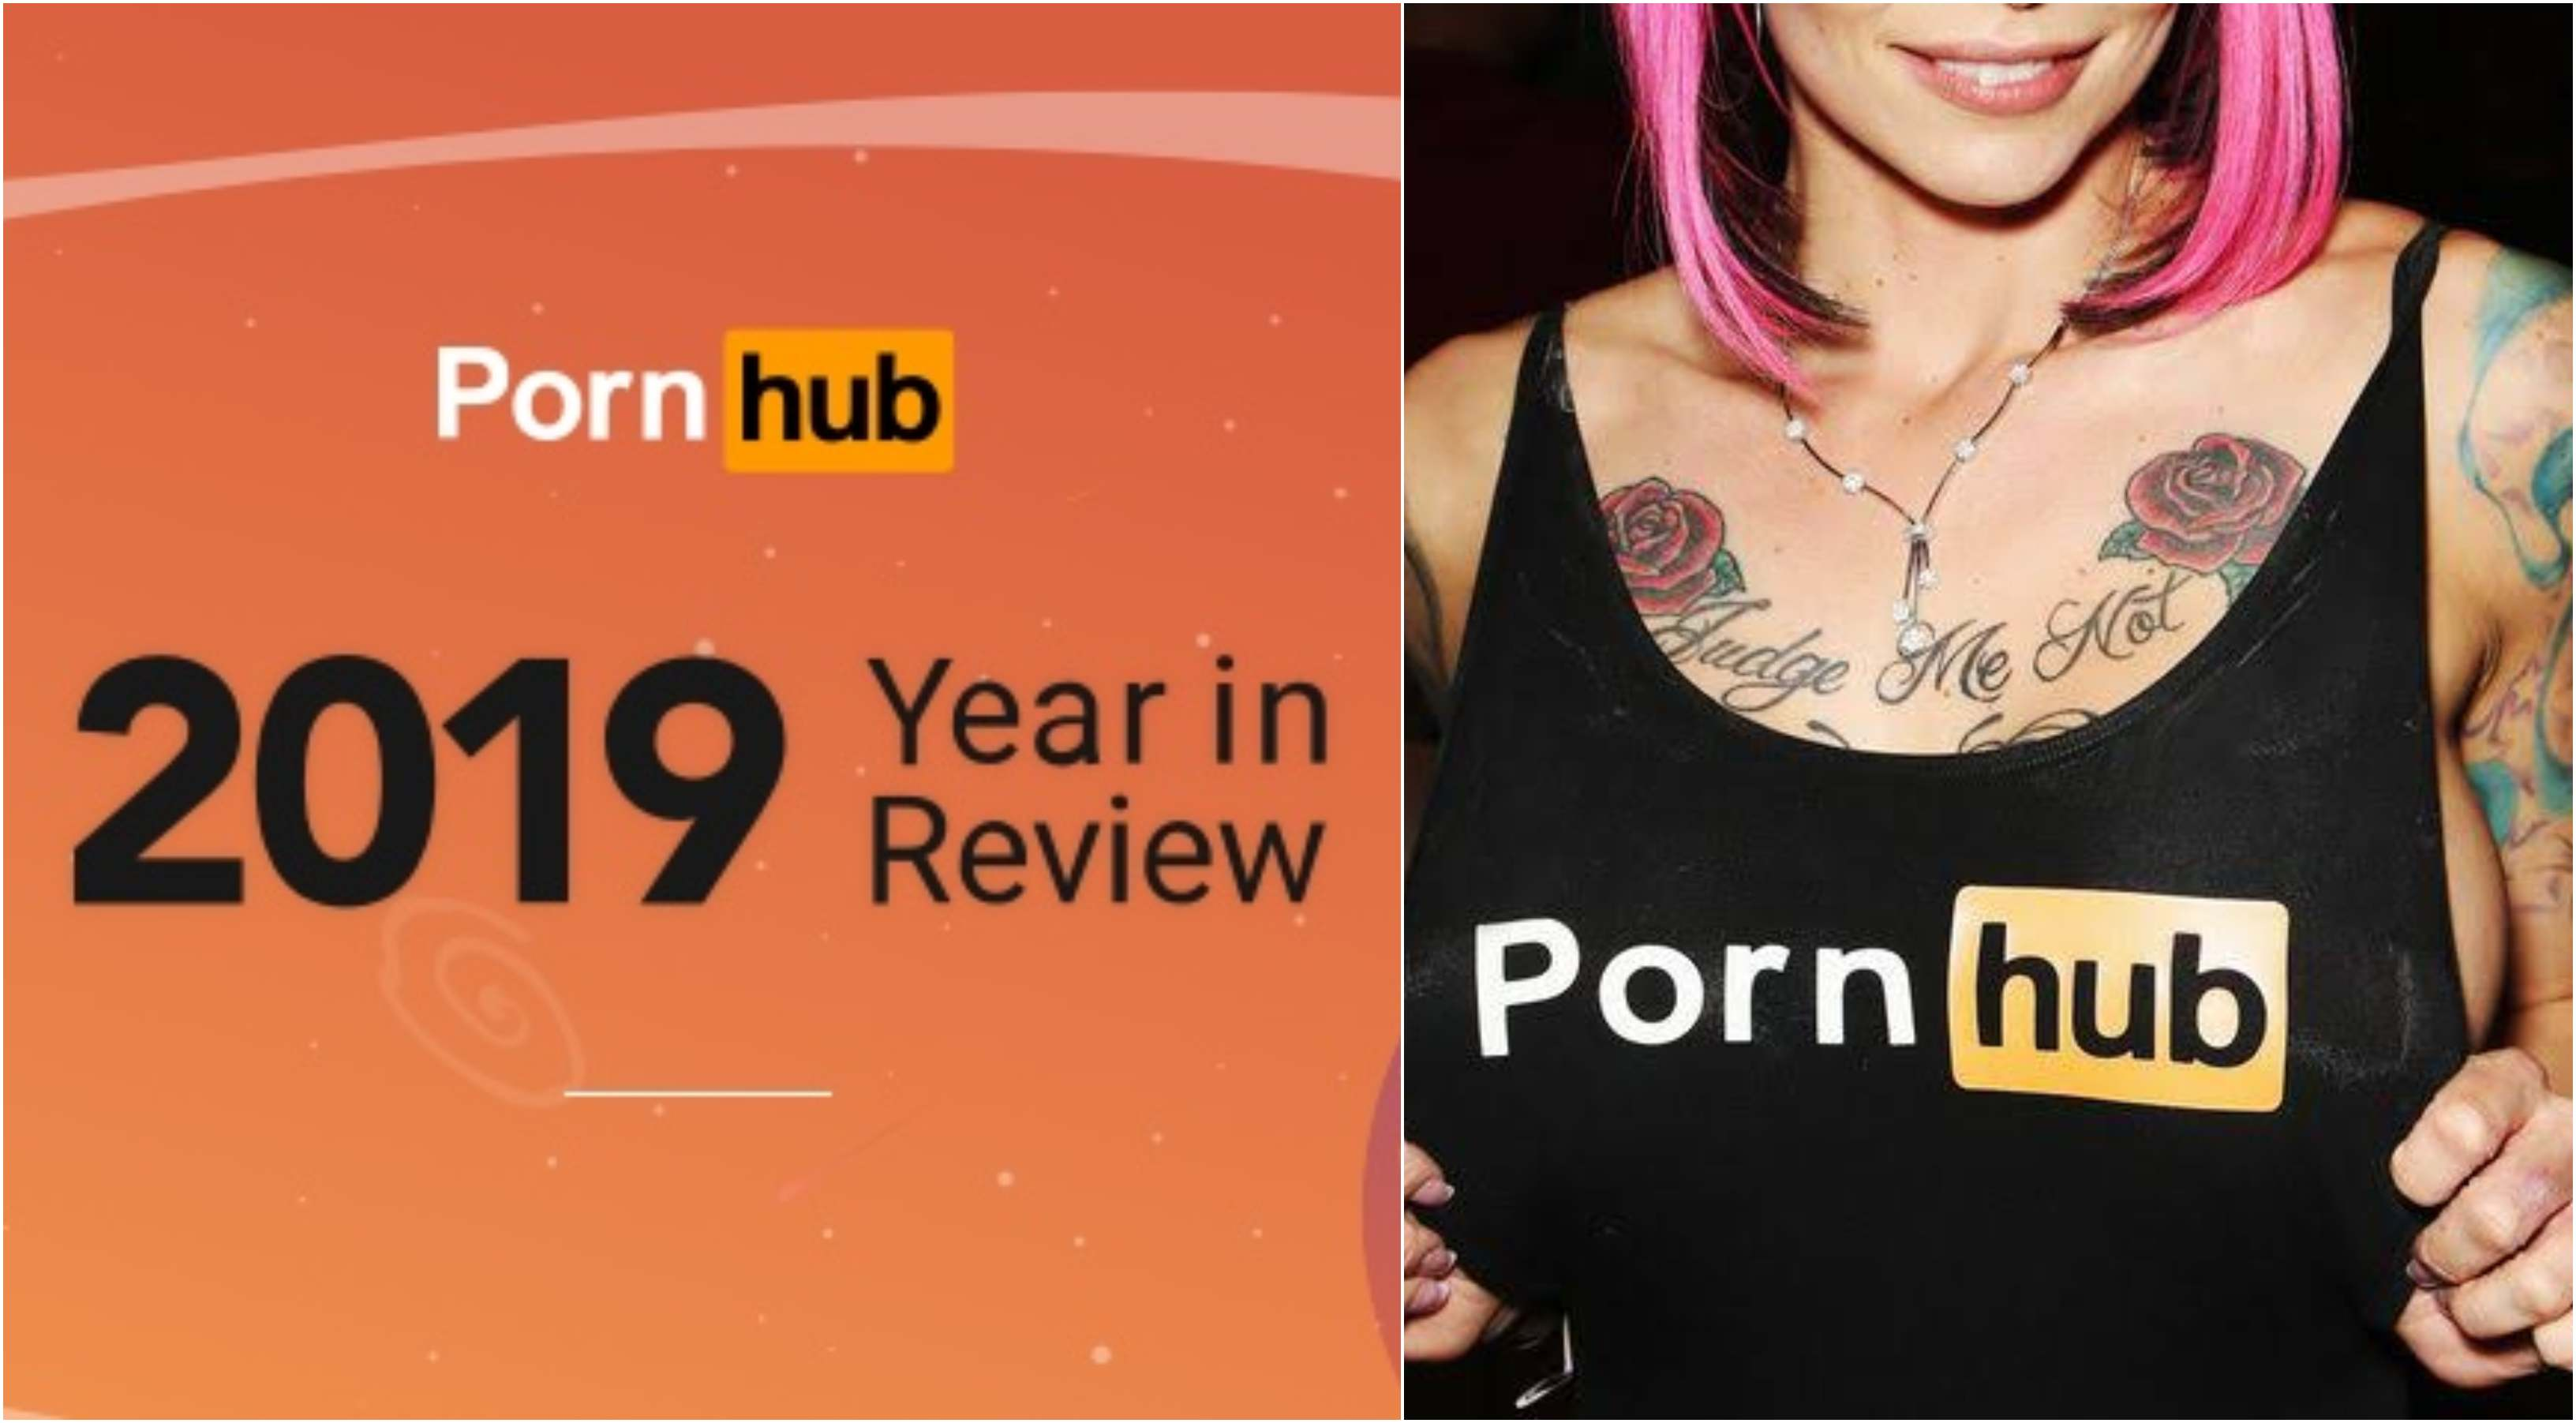 The Hub's year in review exposes what people were watching most in 2019